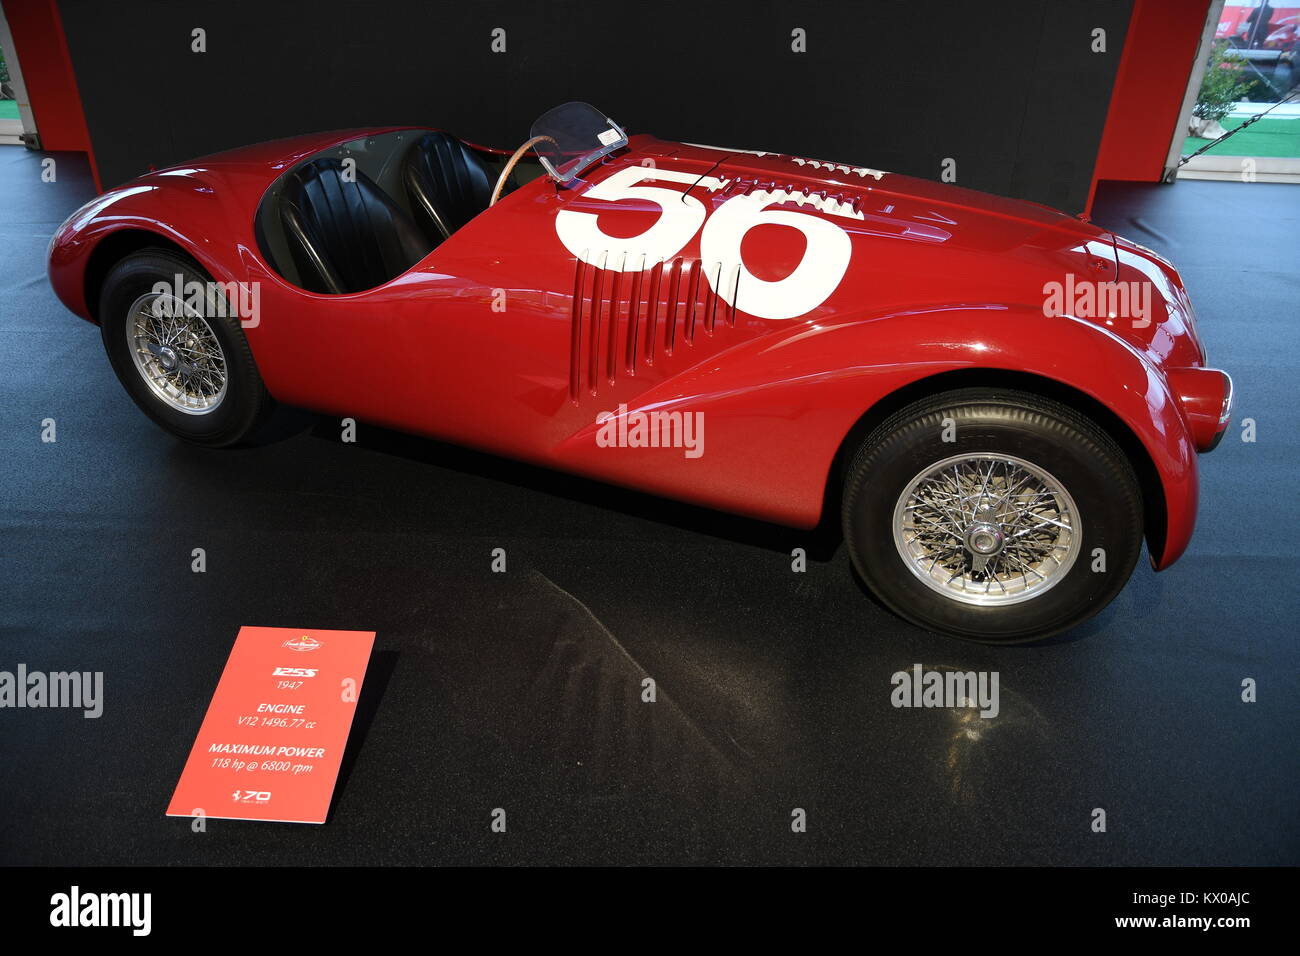 Mugello It October 2017 The First Ferrari 125 S 1947 At Paddock Stock Photo Alamy